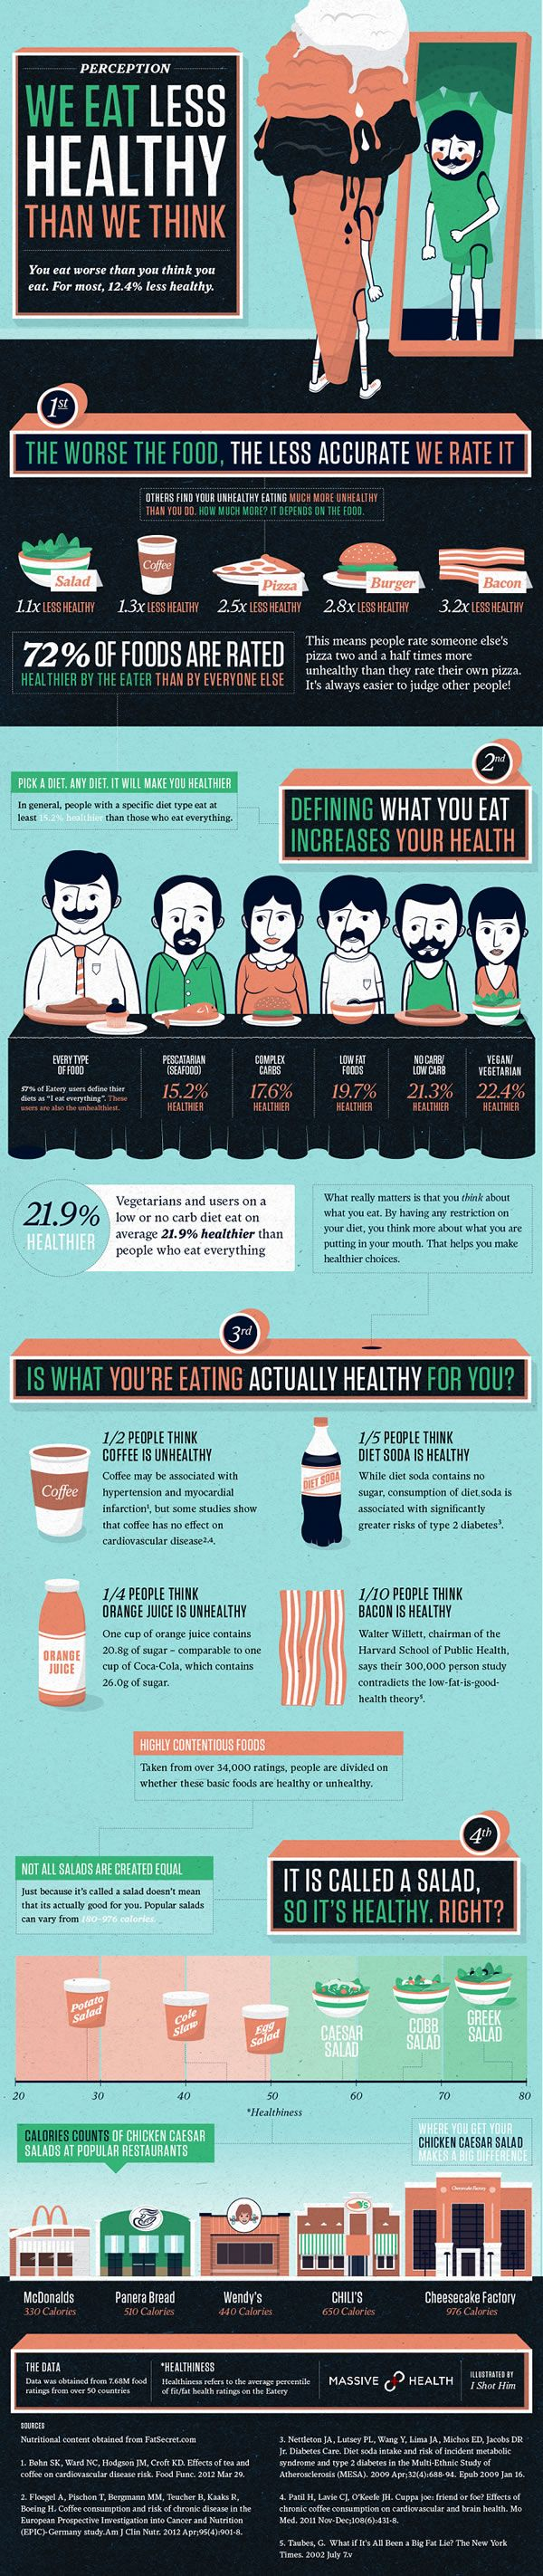 We Eat Less Healthy Than We Think (Infographic)